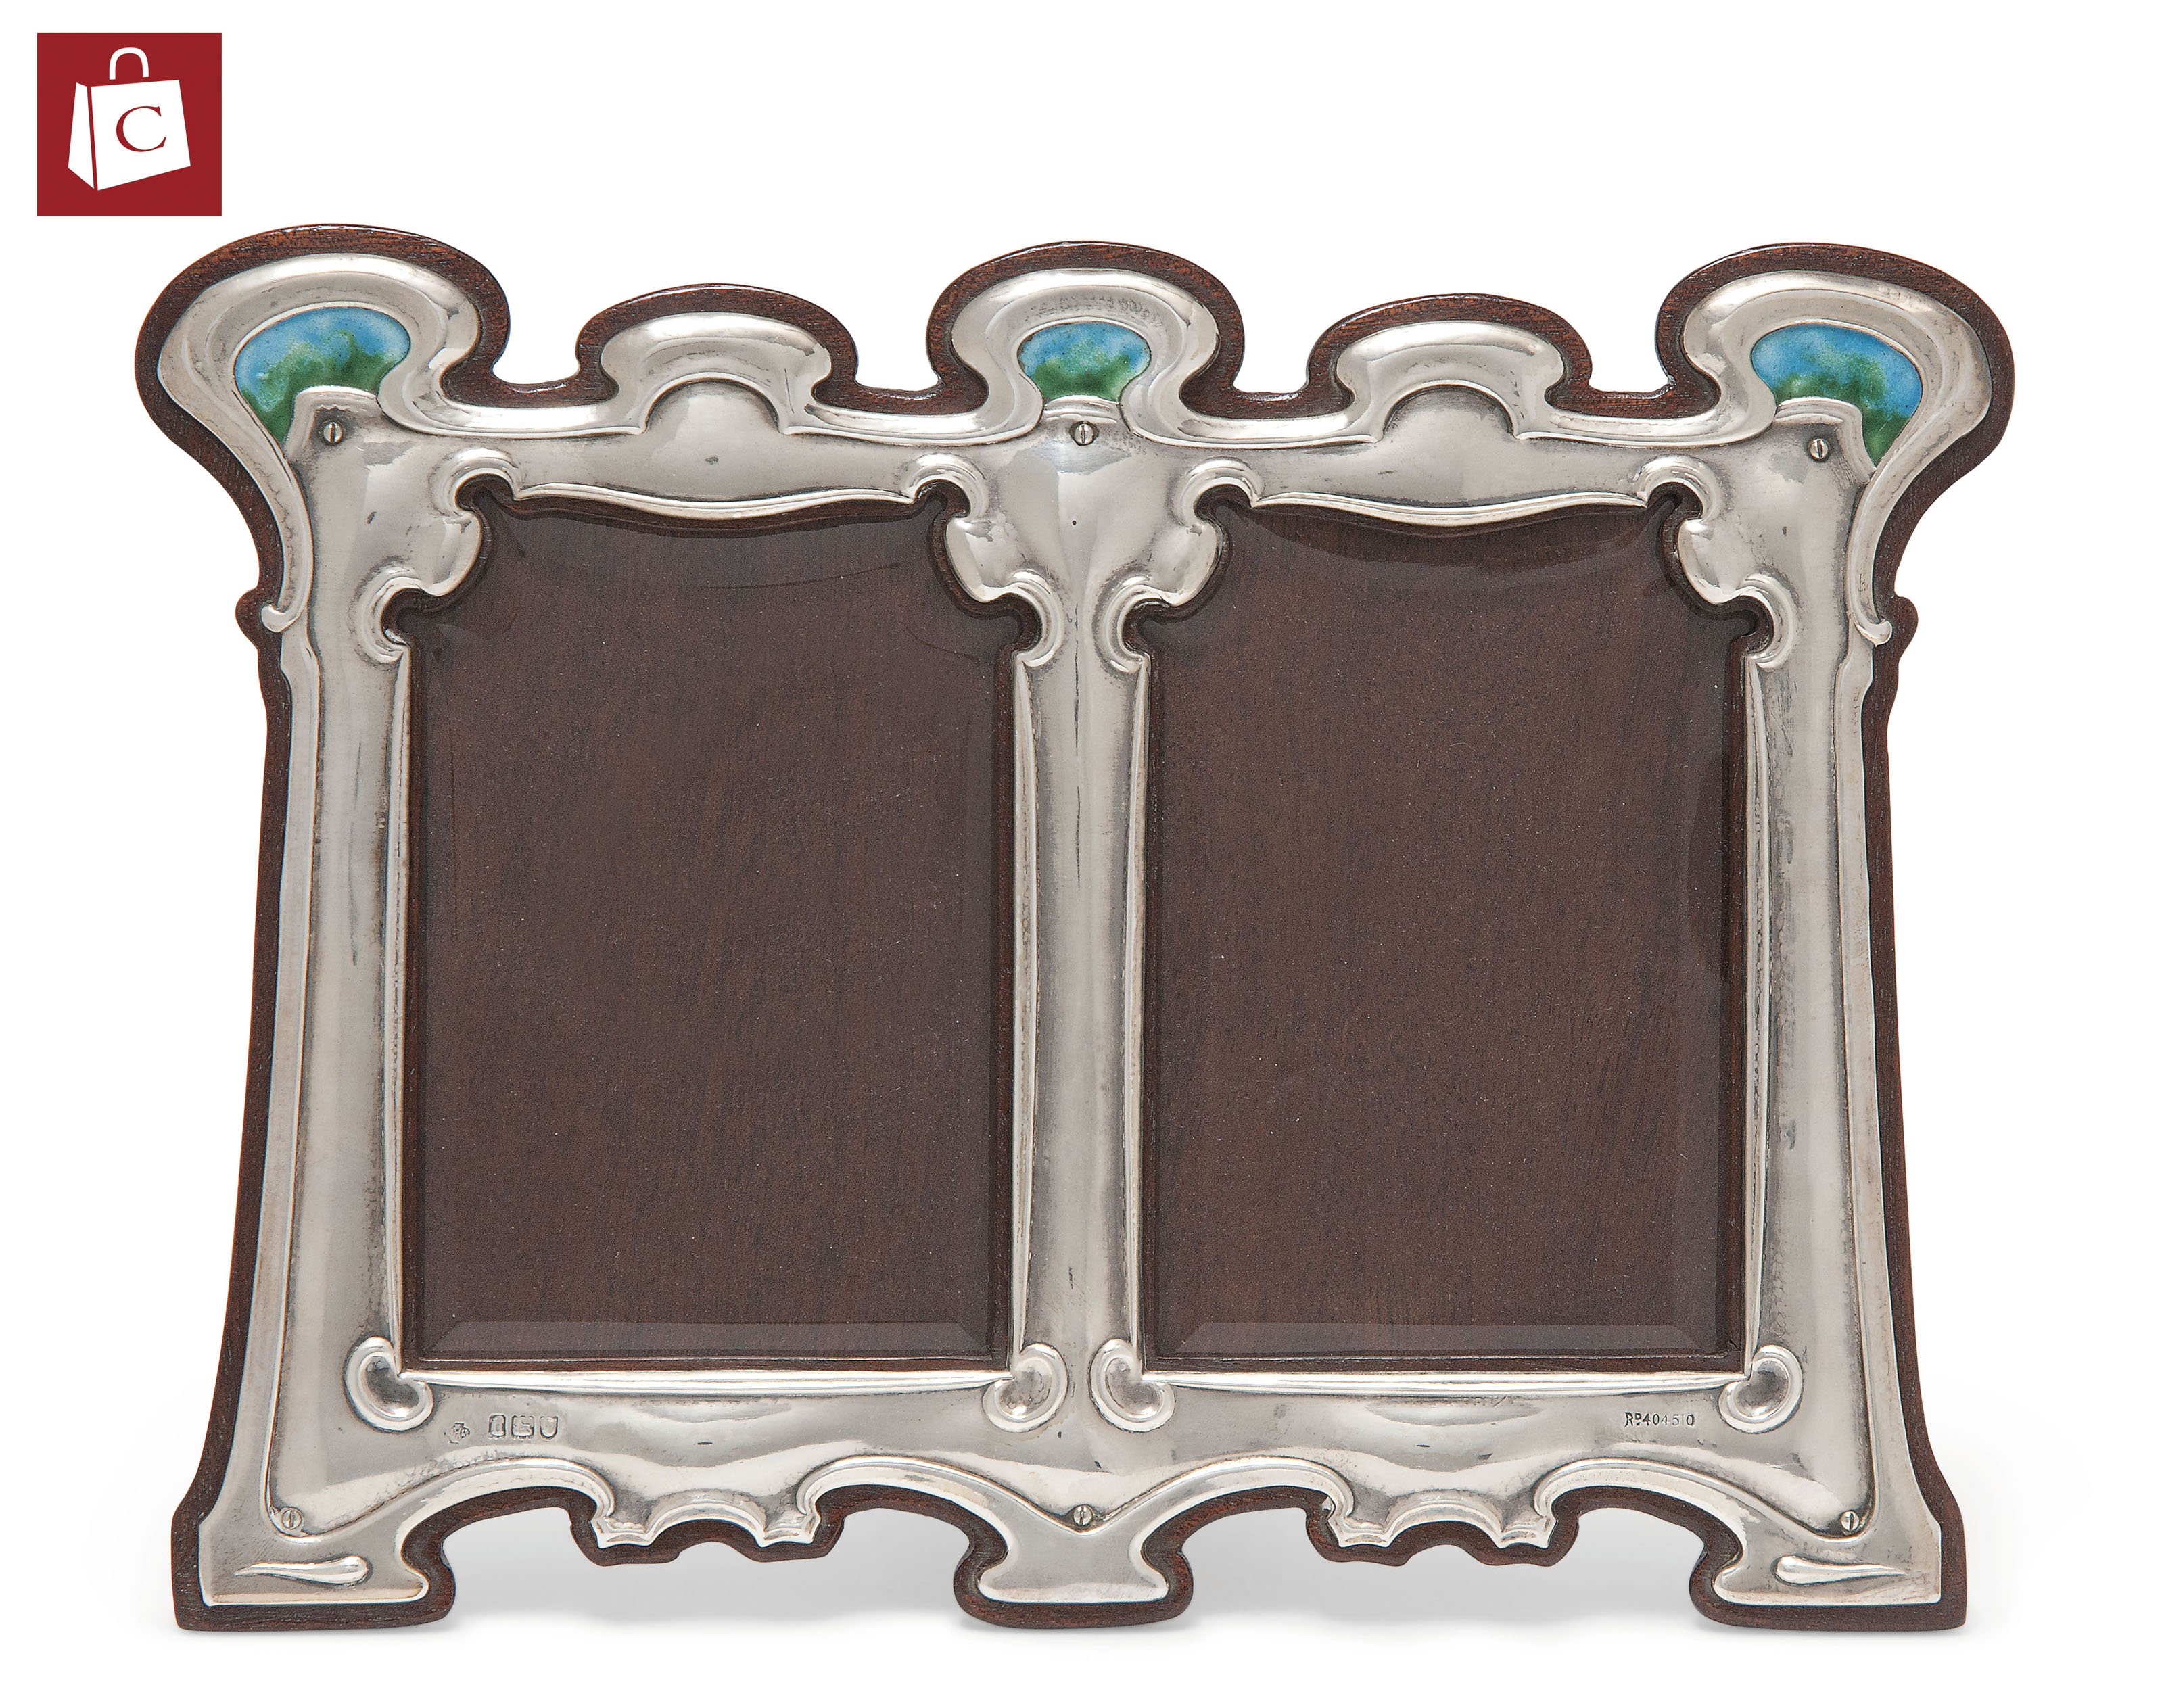 AN ARTS & CRAFTS SILVER, ENAMEL AND MAHOGANY DOUBLE PHOTOGRAPH FRAME